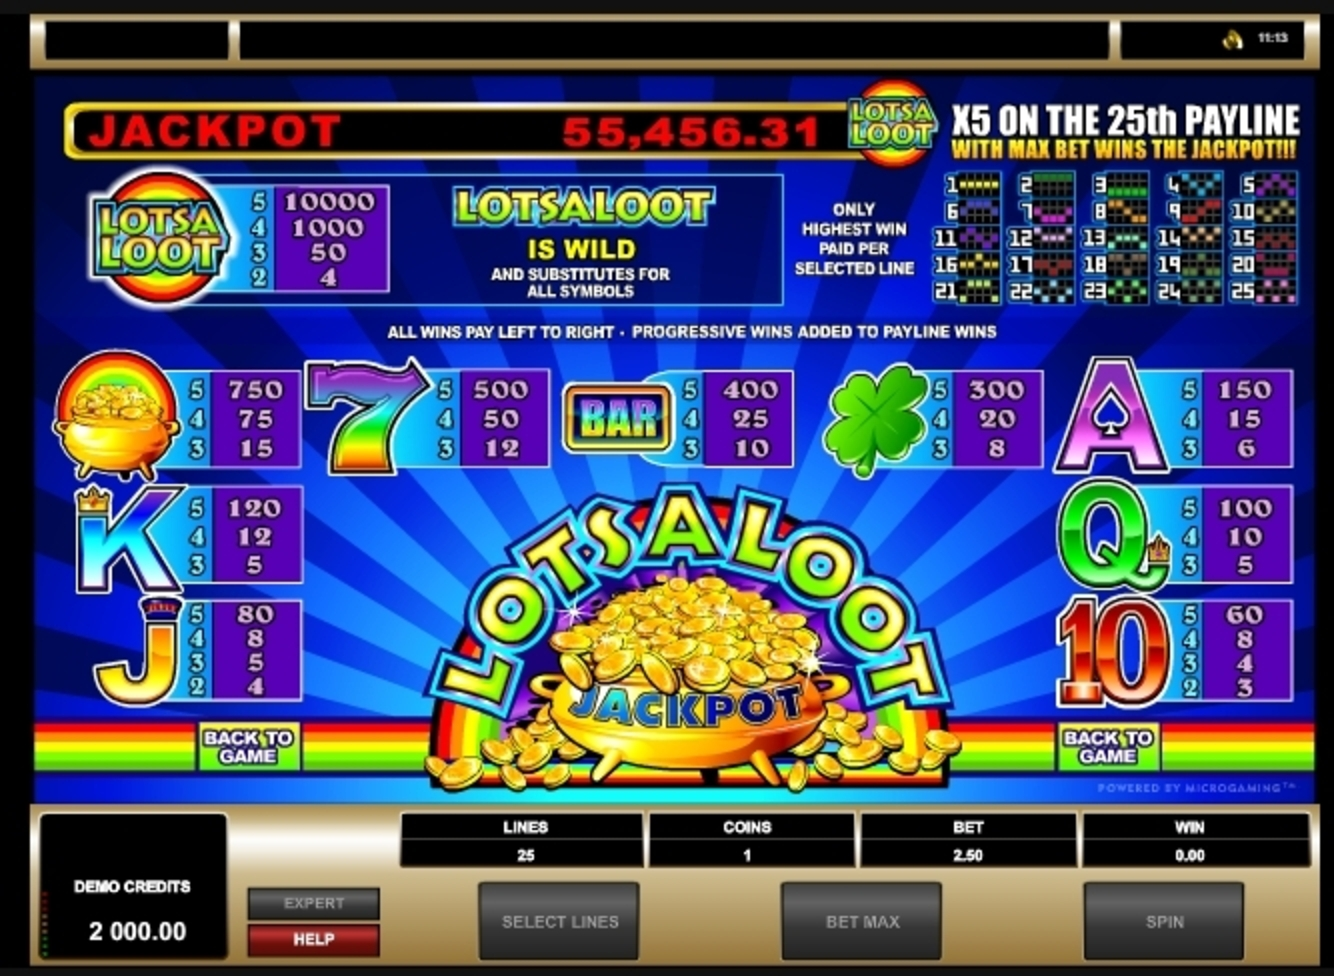 Reels in Lots a Loot 5 Reel Slot Game by Microgaming